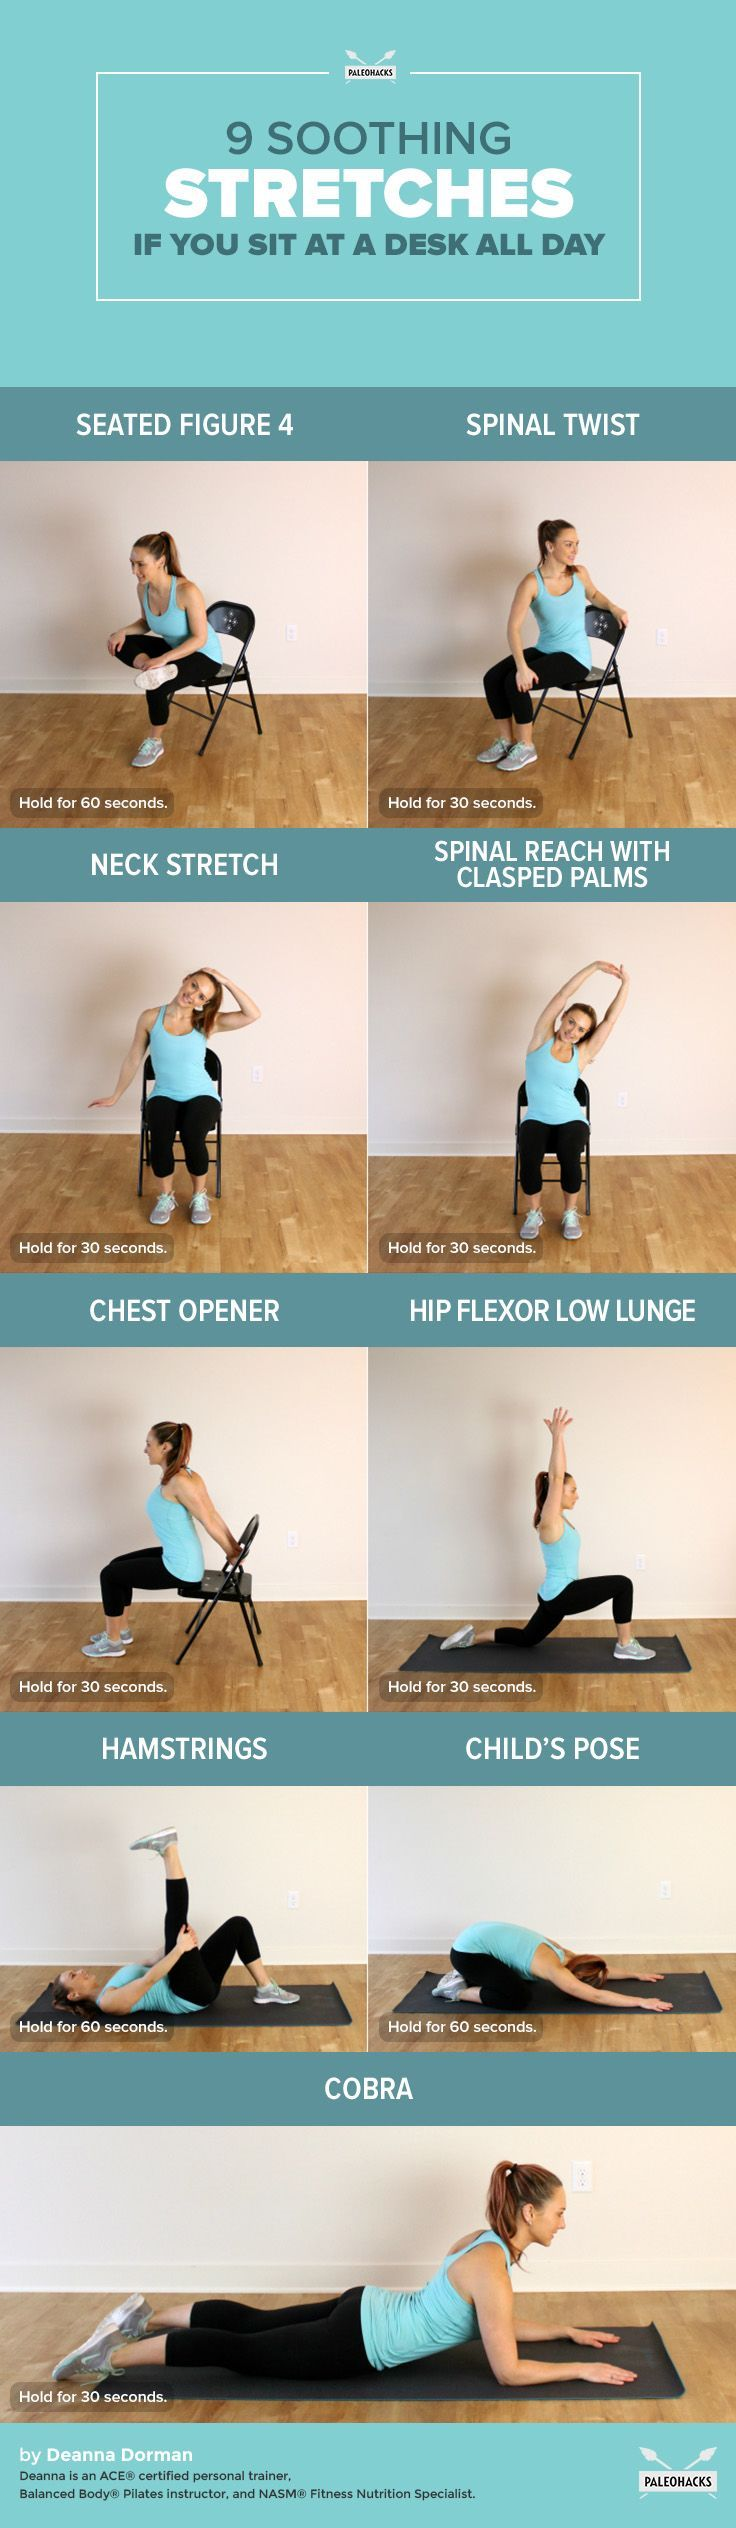 Sit at a computer all day at work? Spend hours sitting through traffic? Here are nine stretches to soothe and strengthen muscles to prevent lower back pain.